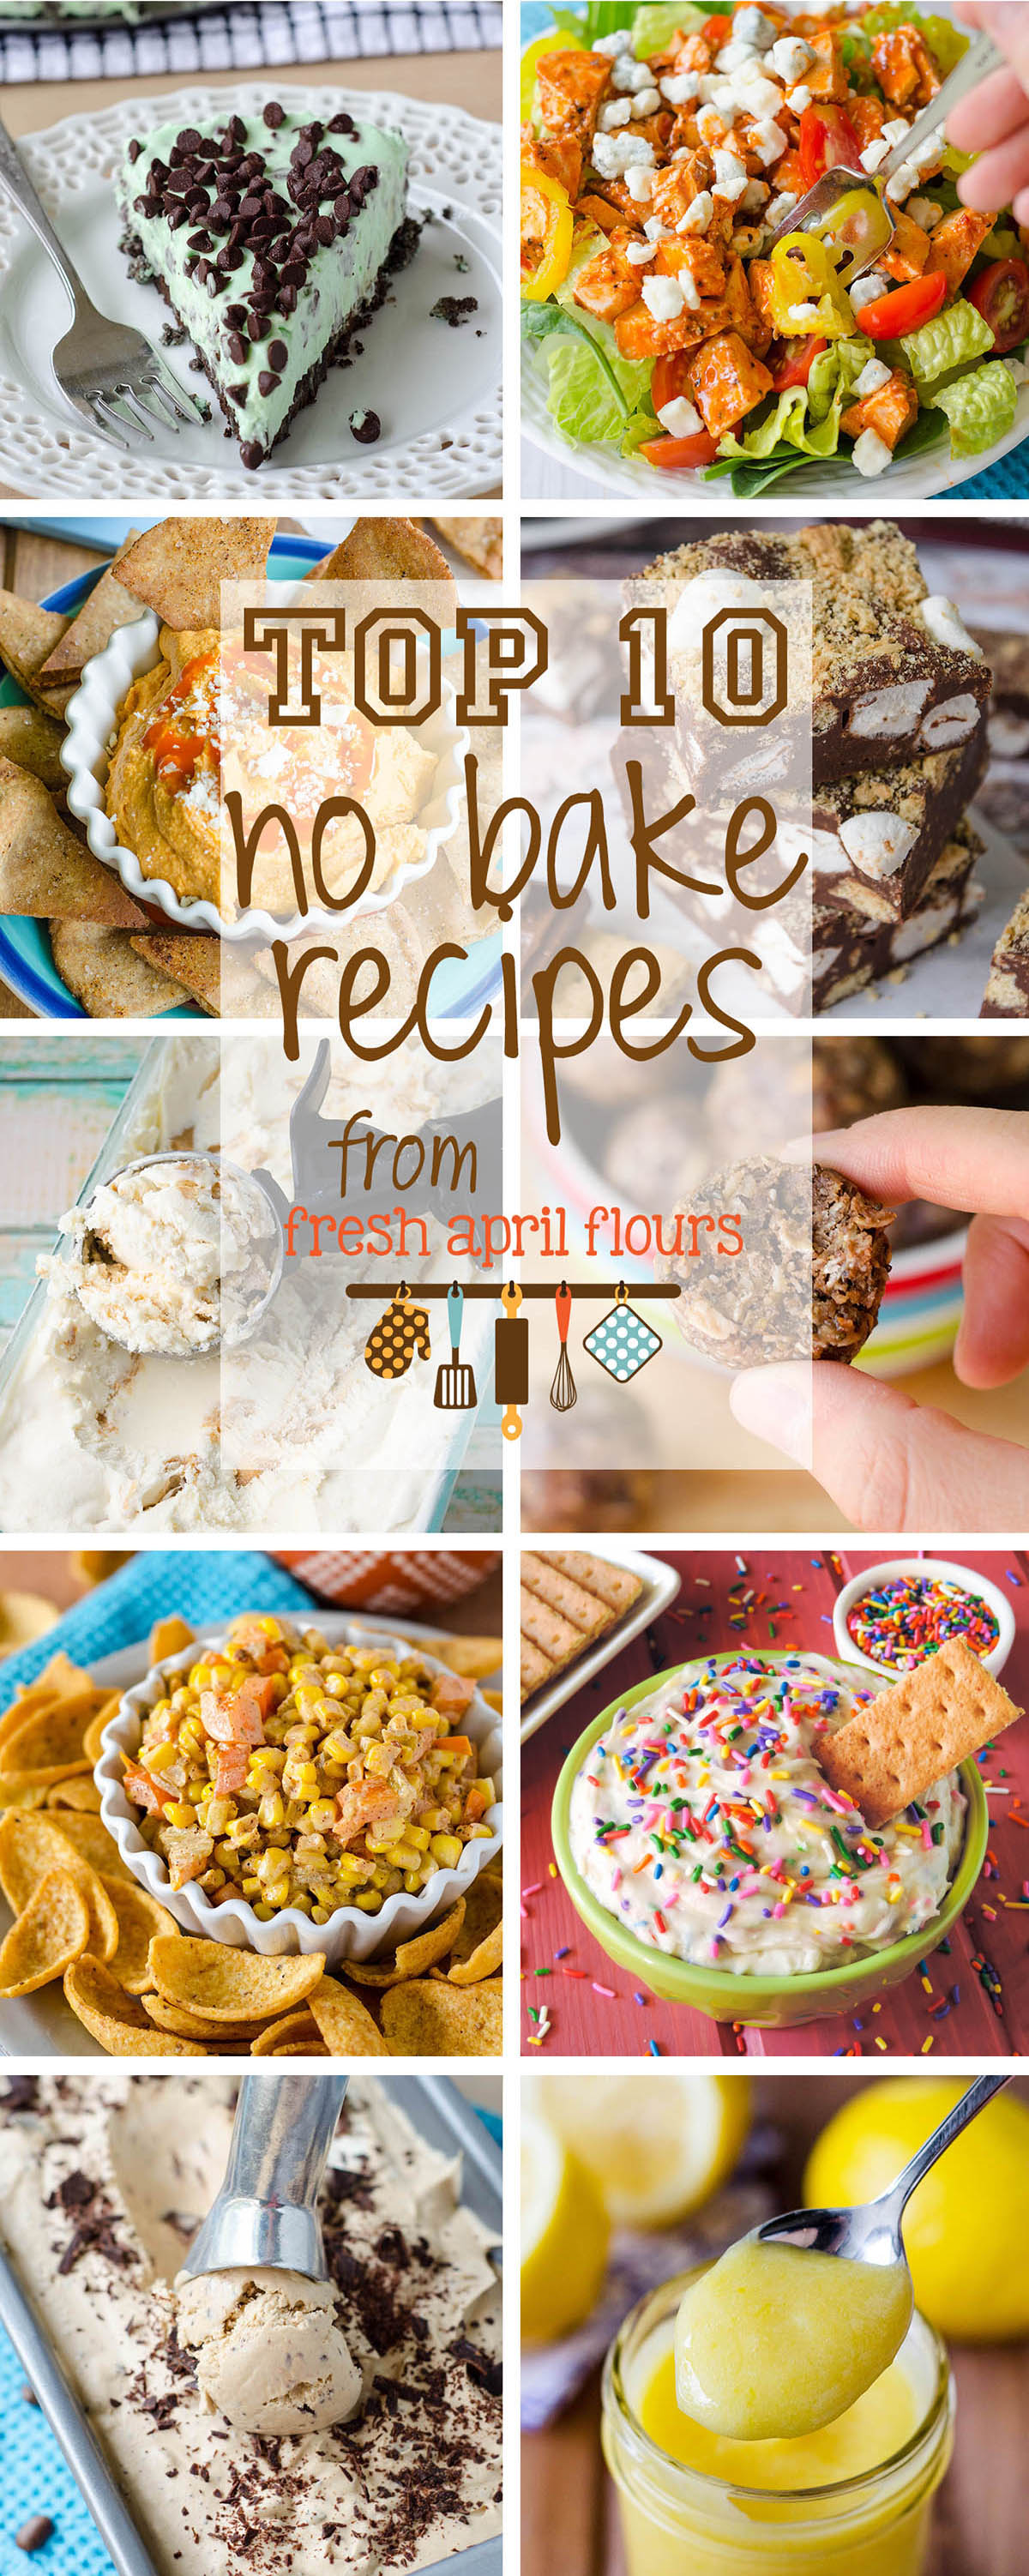 Top 10 No Bake Recipes from Fresh April Flours